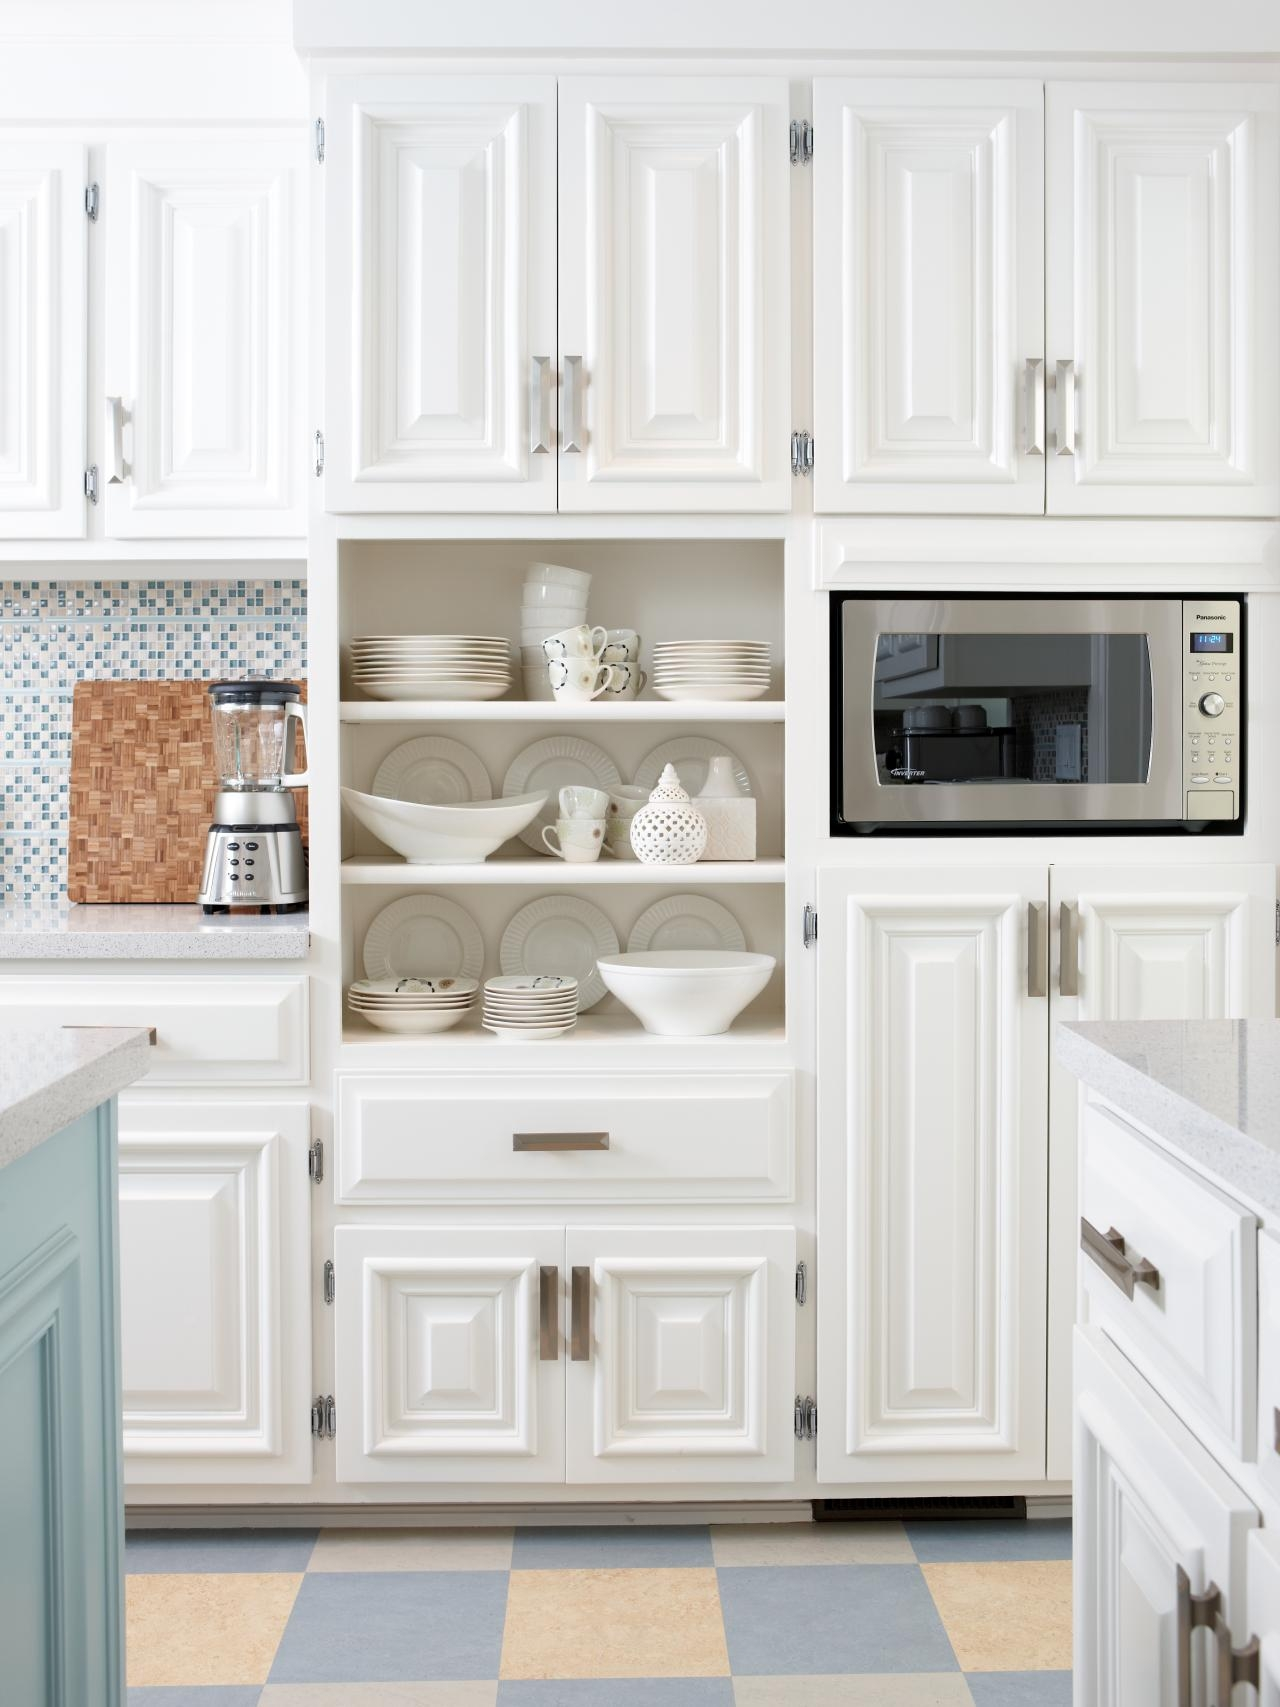 Images Of Floor To Ceiling Kitchen Cabinets